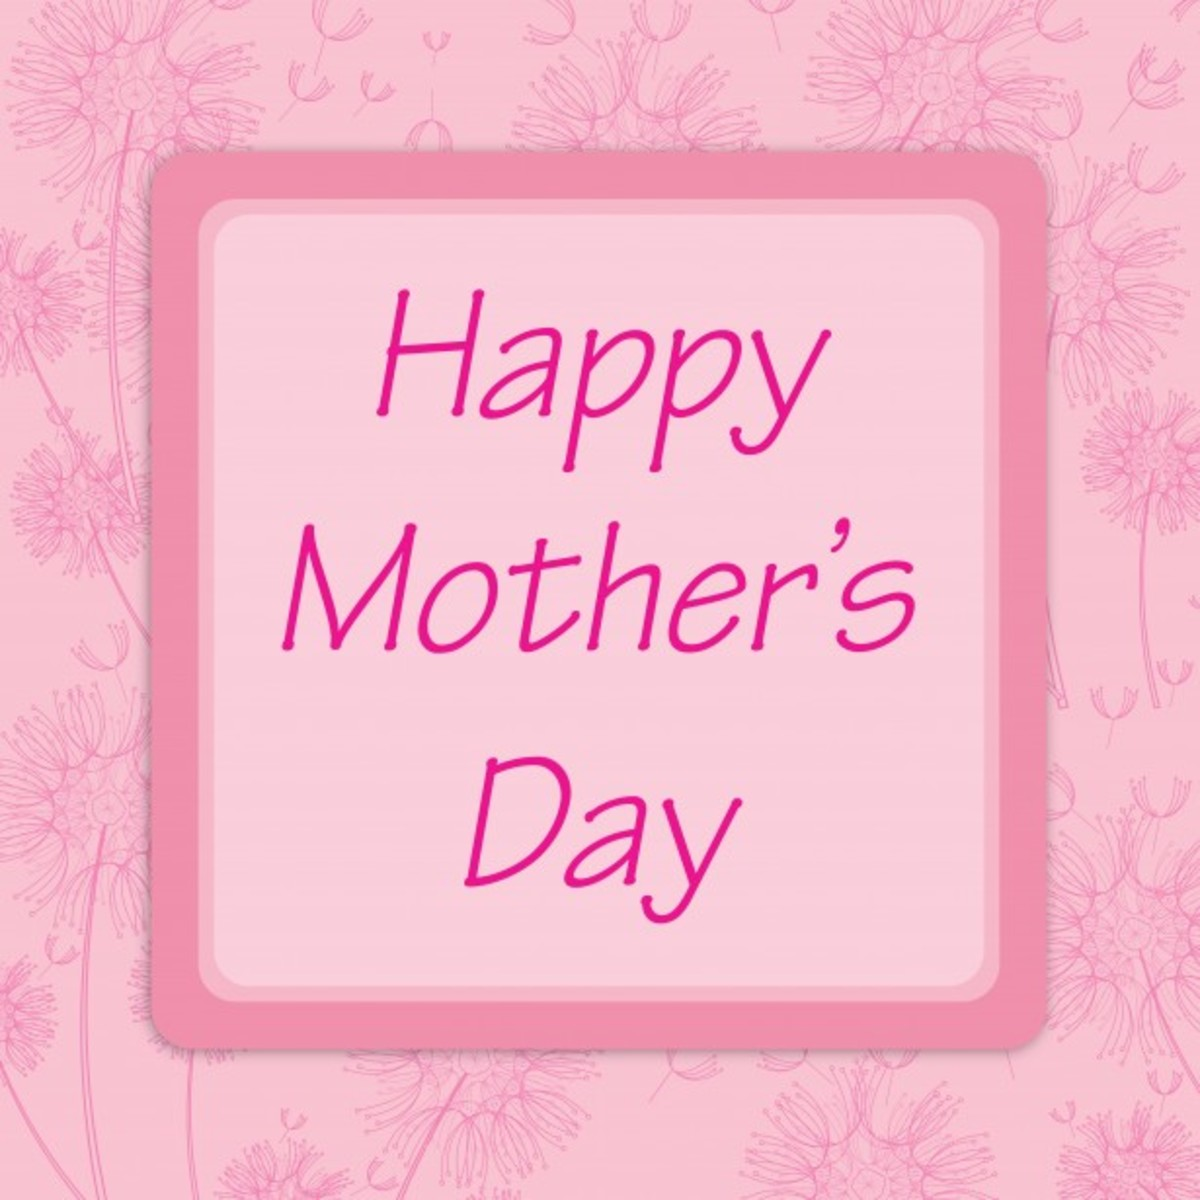 100 MOTHER'S DAY CARDS and Pictures